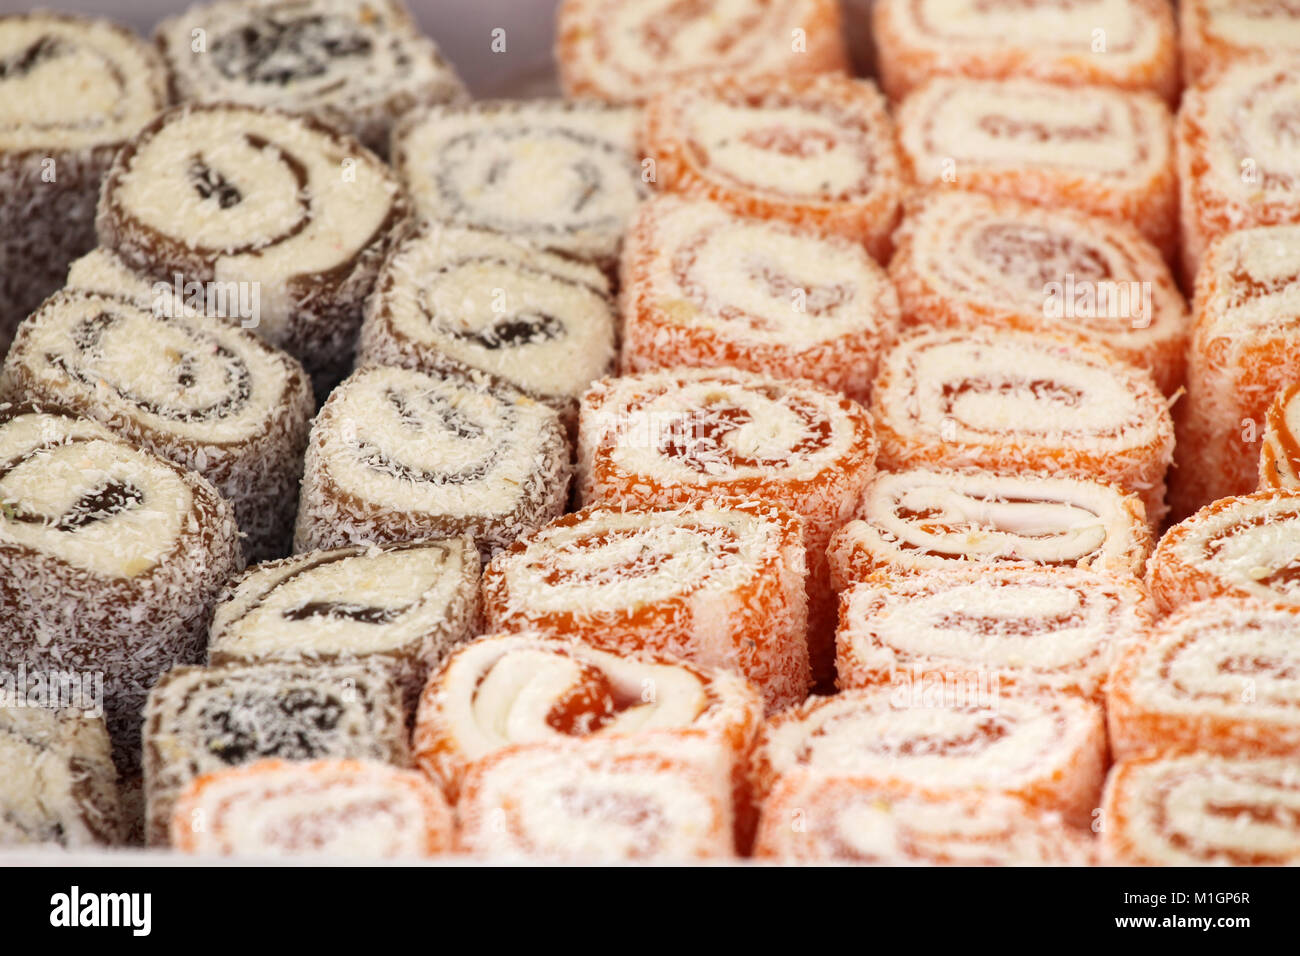 Turkish delight. Lokum. Sweet candies with nuts. turkish delight for dessert. Cezerye or lokum. Turkish candies and sweets, tasty background texture, Stock Photo